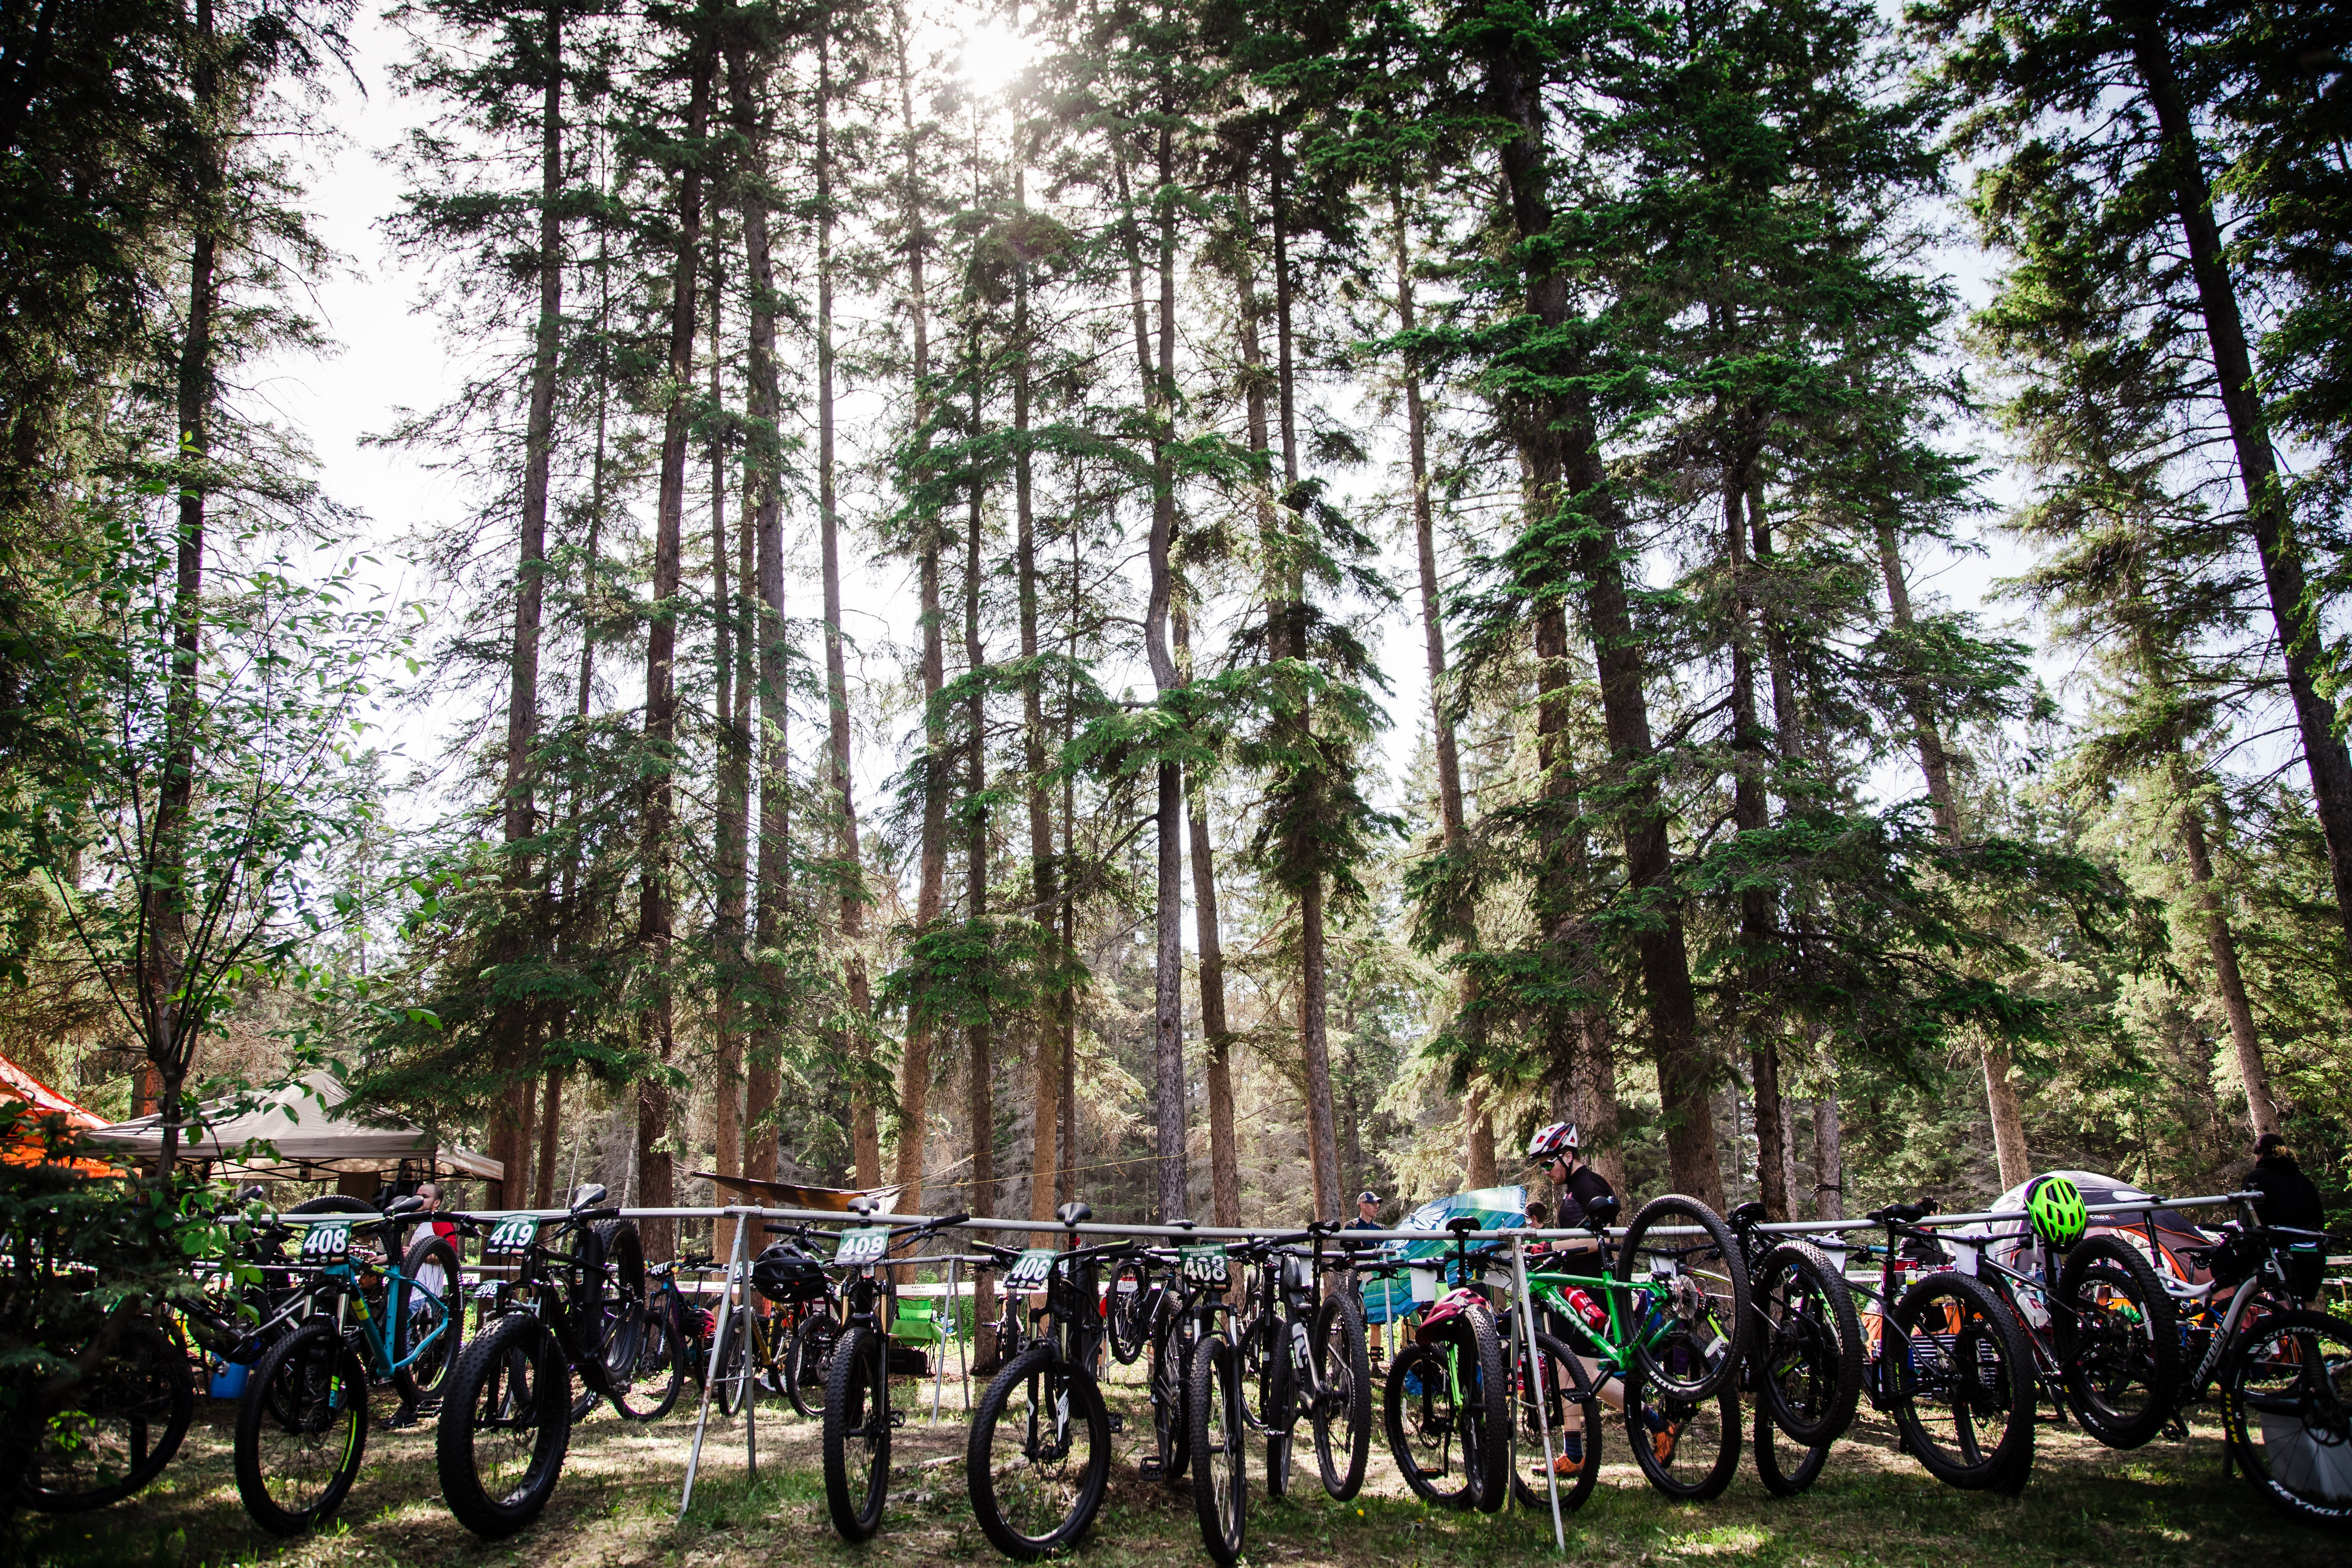 Ready for the 2019 Pine Needle Bike & Music Festival